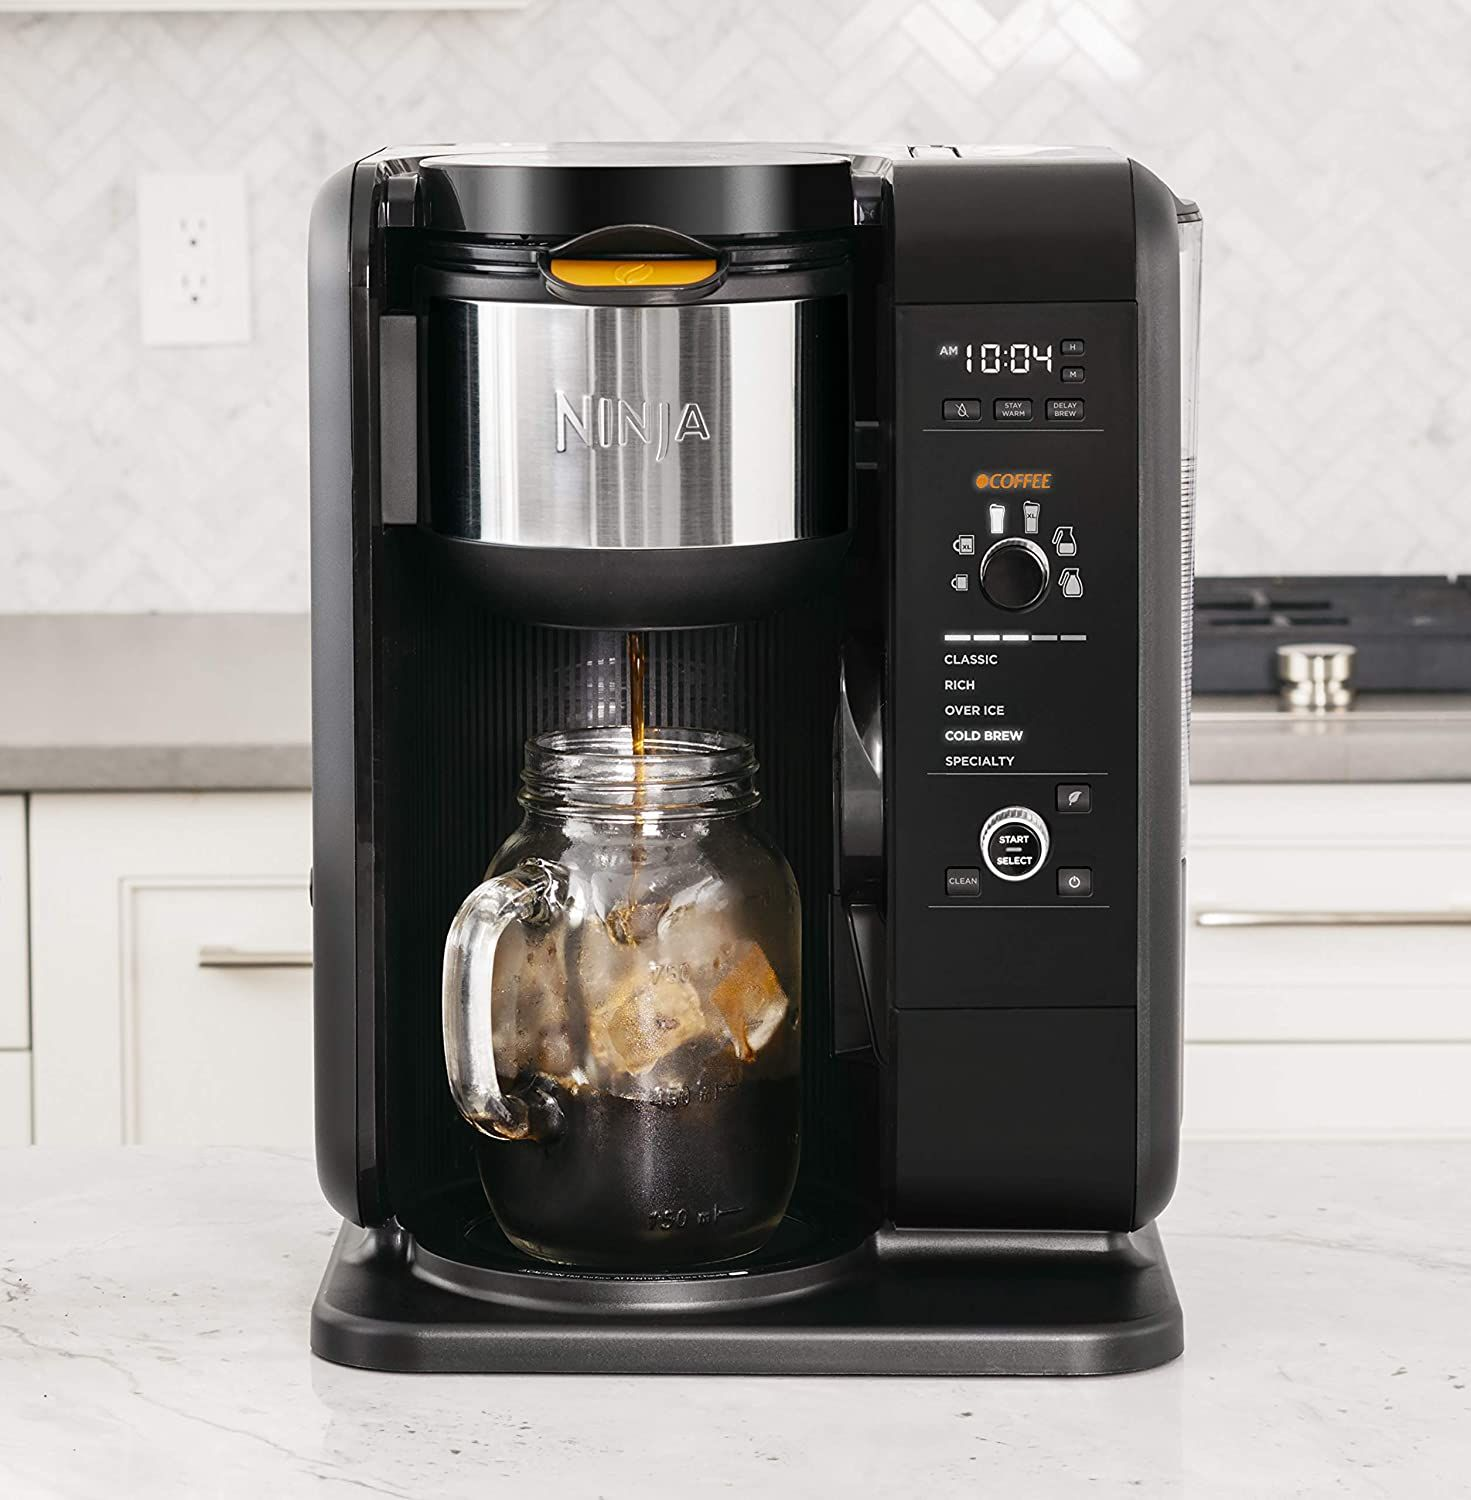 Ninja hot and cold brewed system 17999 in 2020 coffee